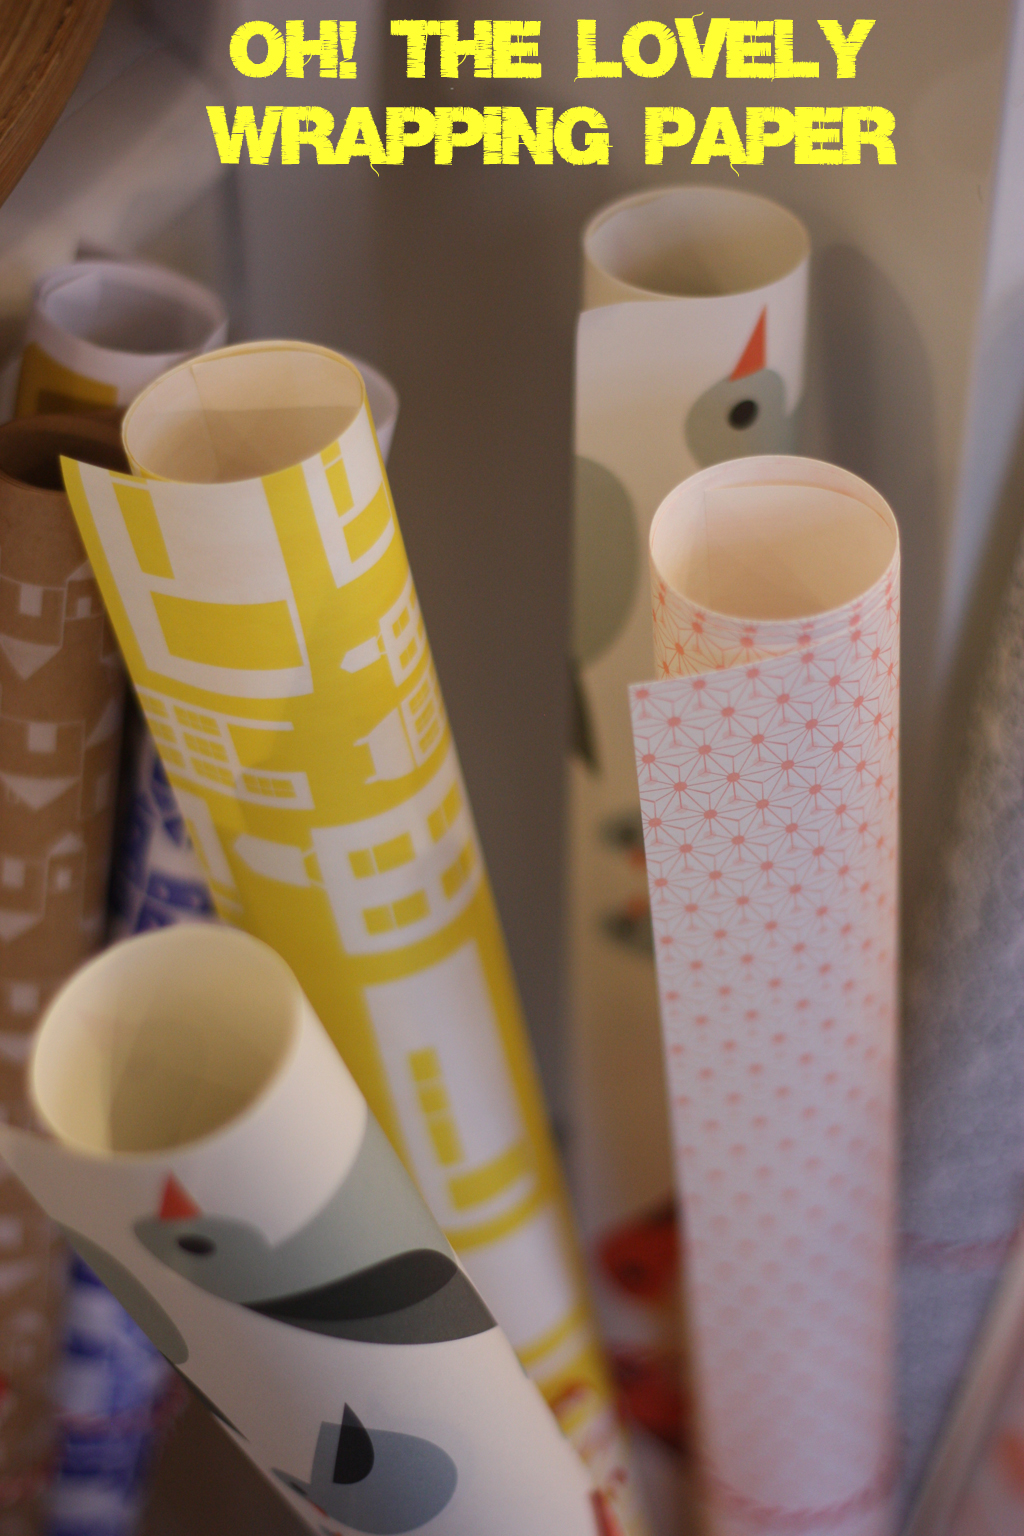 Lovely wrapping paper by madame love